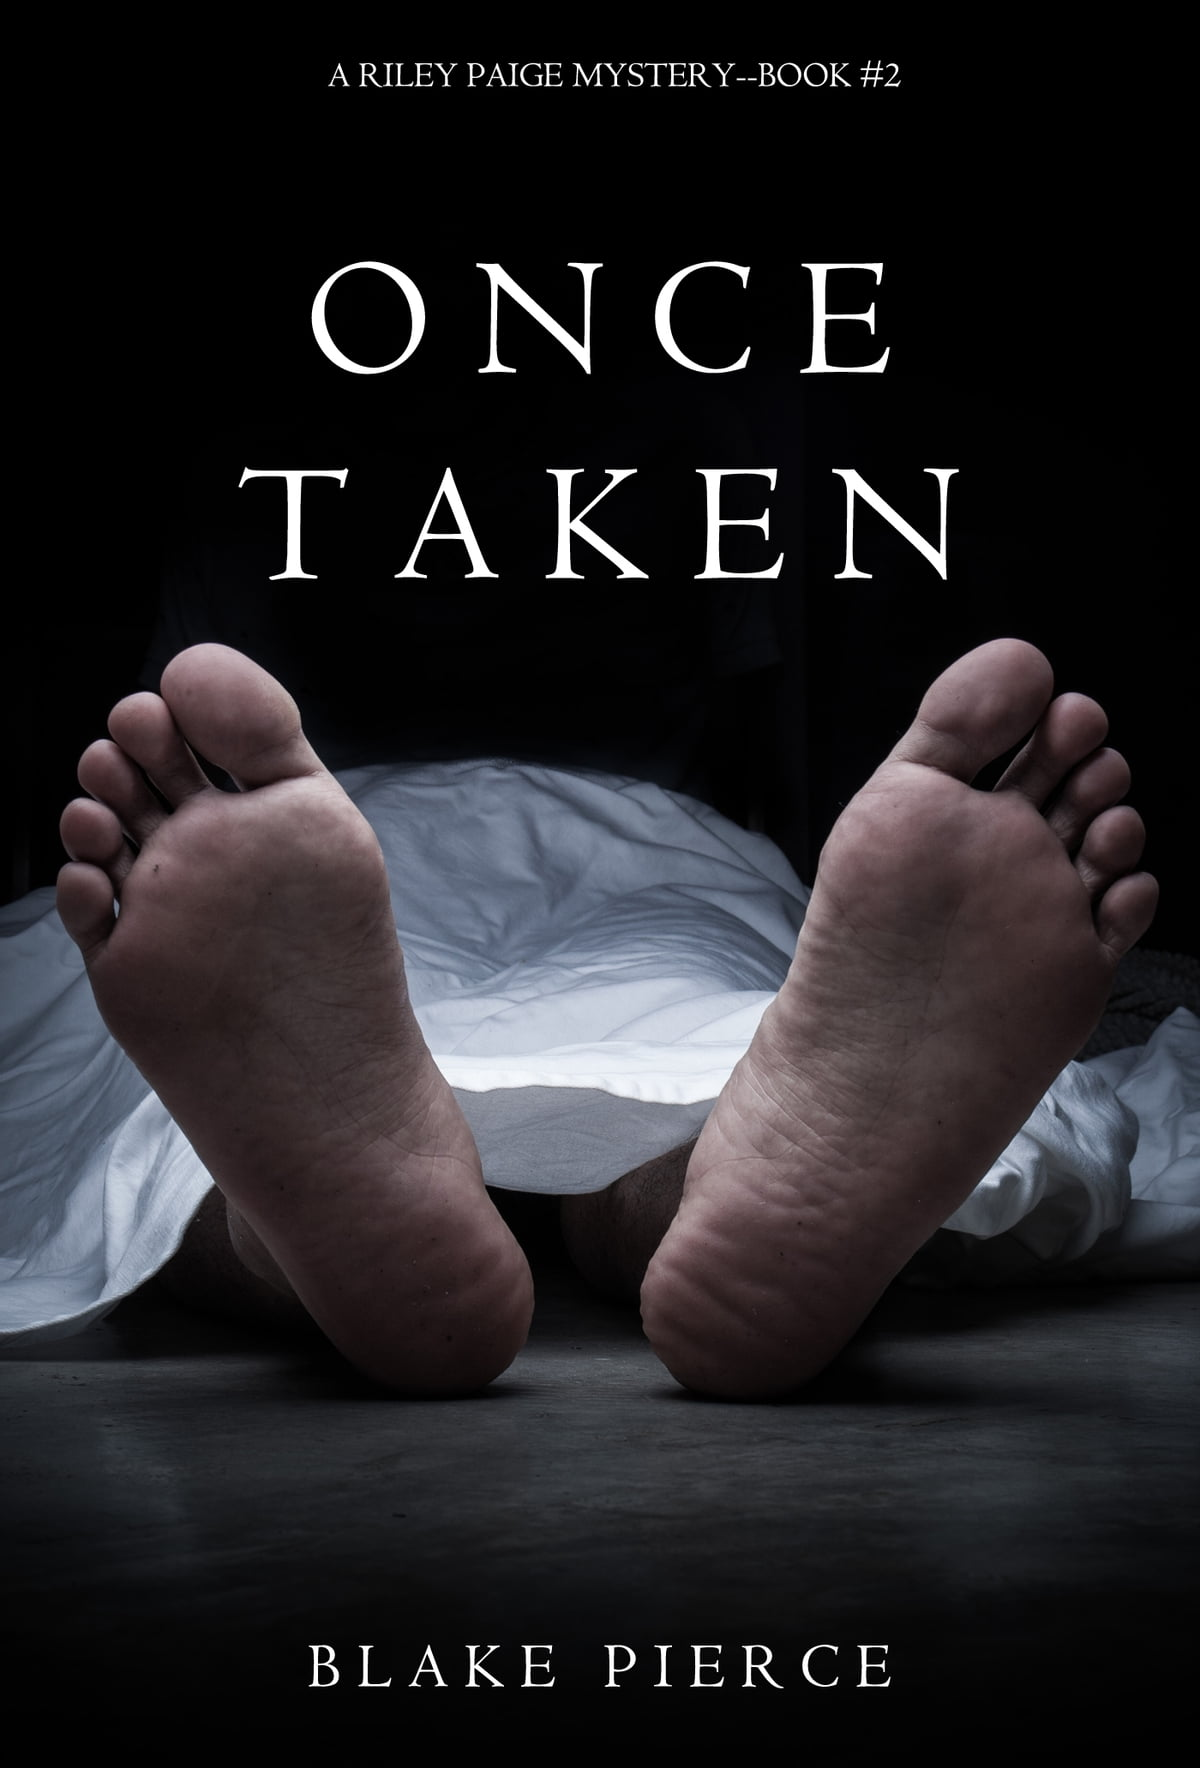 Once Taken (a Riley Paige Mysterybook #2) Ebook By Blake